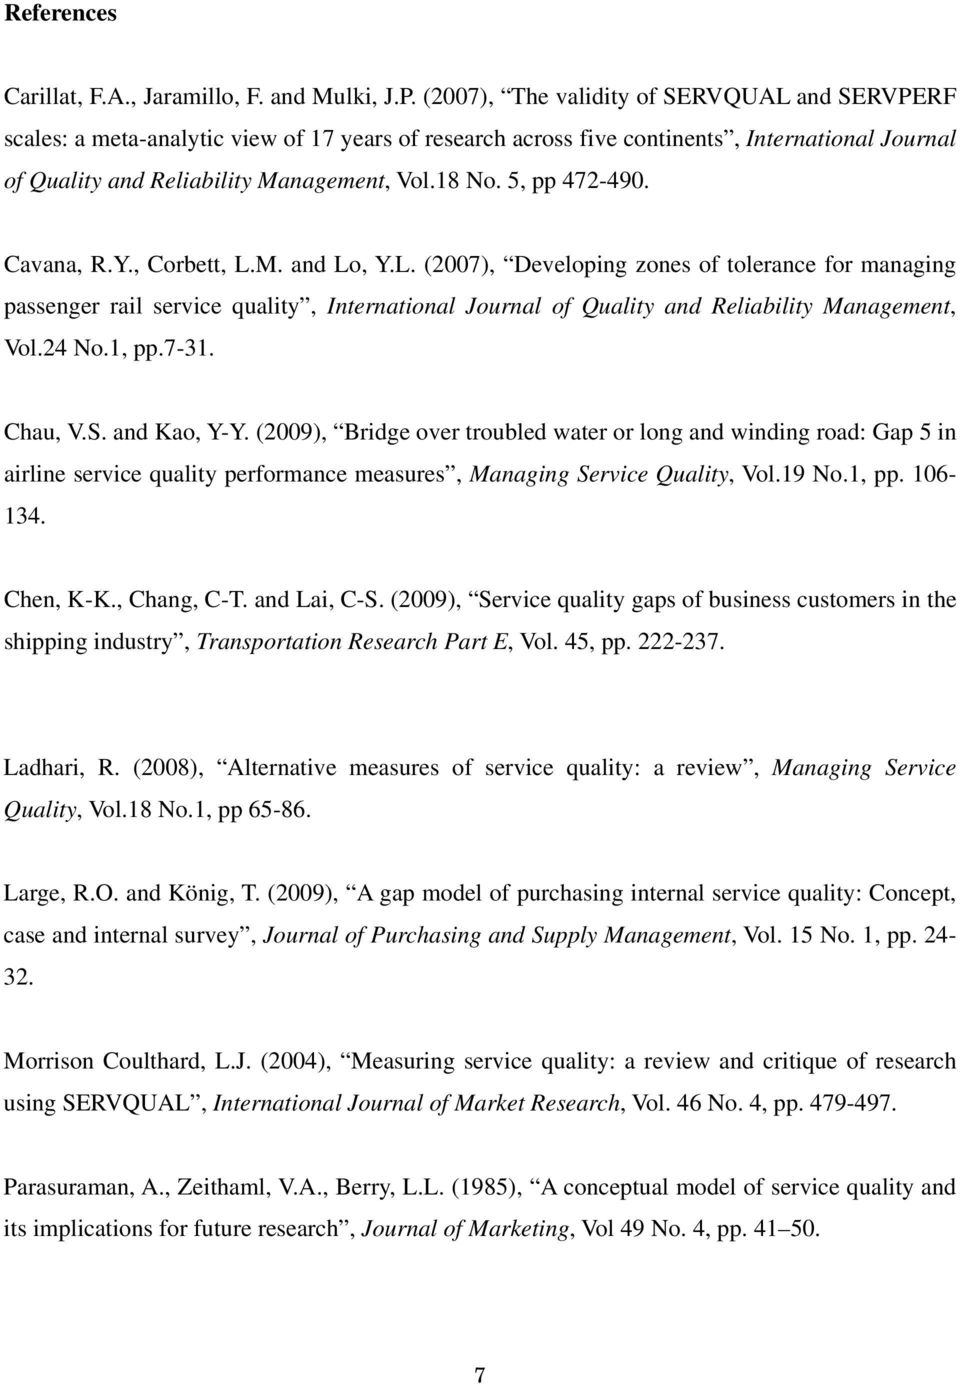 5, pp 472-490. Cavana, R.Y., Corbett, L.M. and Lo, Y.L. (2007), Developing zones of tolerance for managing passenger rail service quality, International Journal of Quality and Reliability Management, Vol.